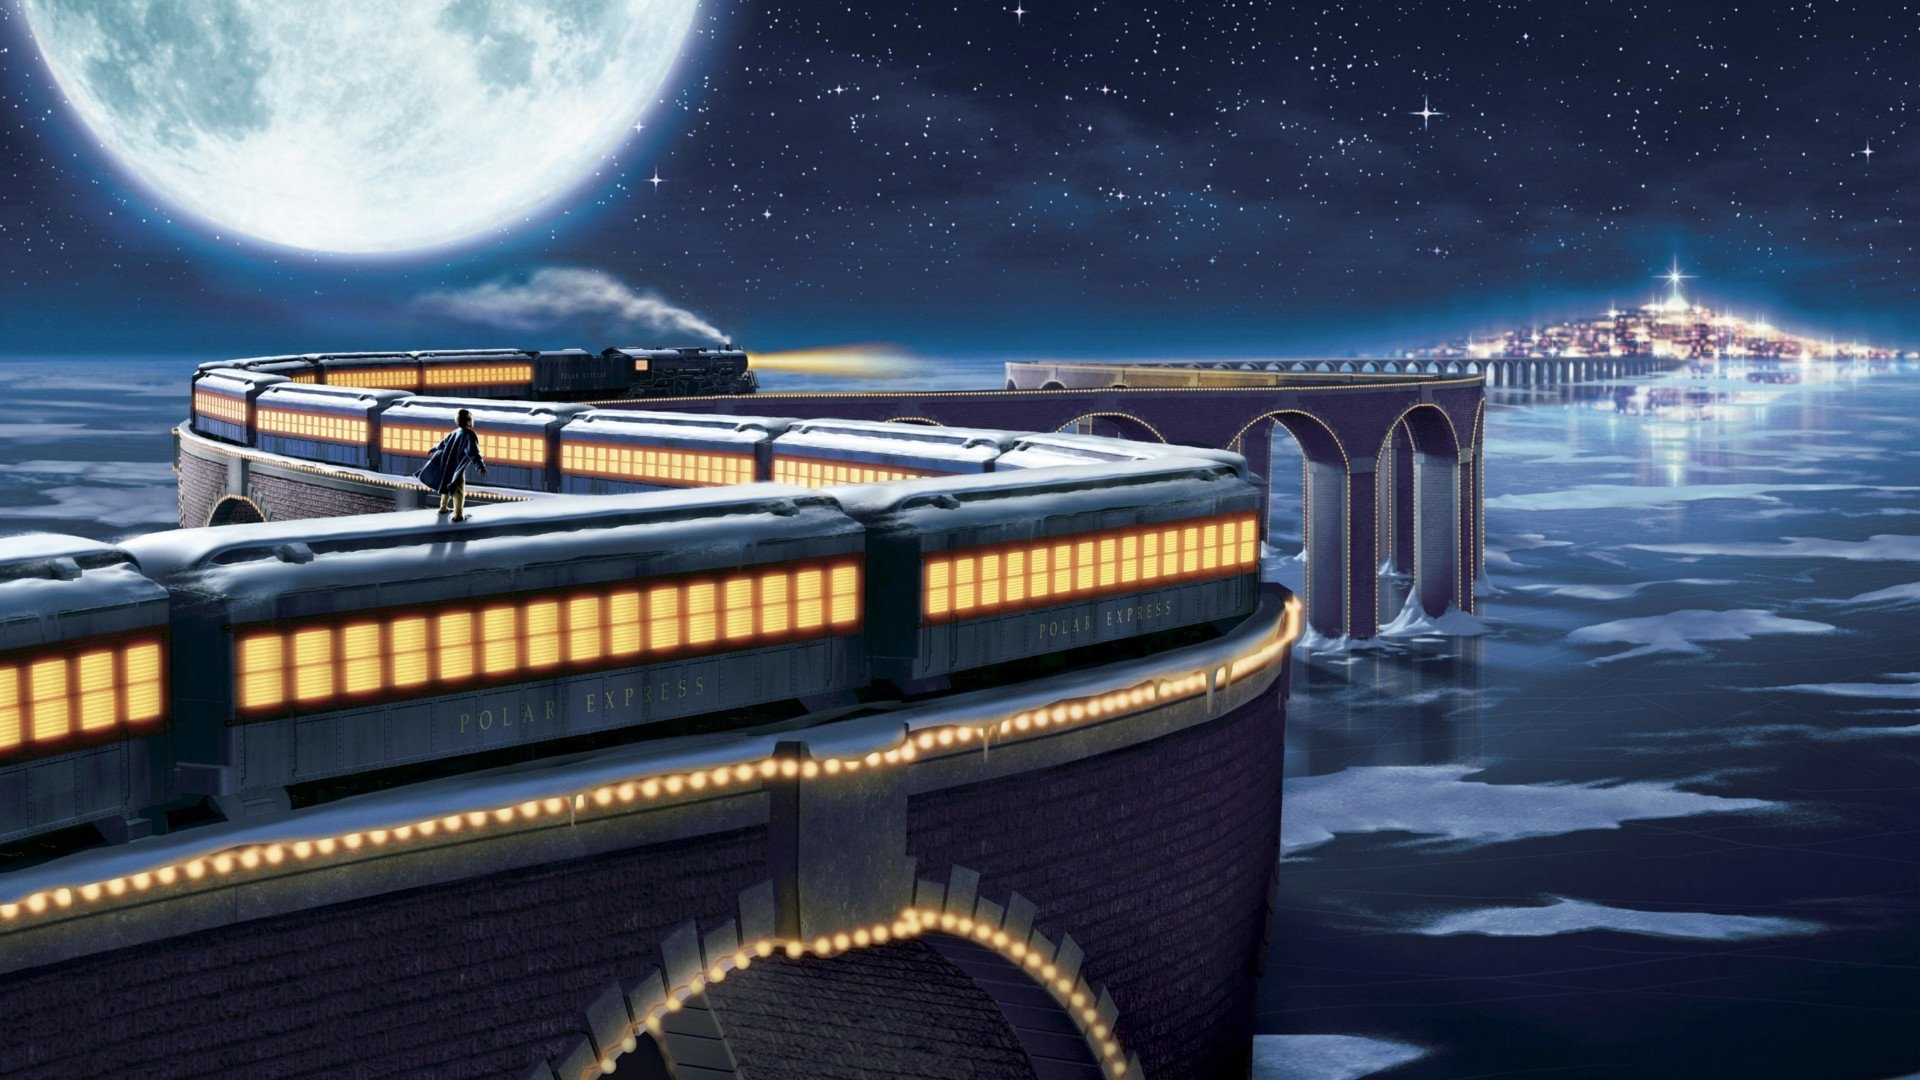 10 Most Popular The Polar Express Wallpaper FULL HD 1920×1080 For PC Desktop